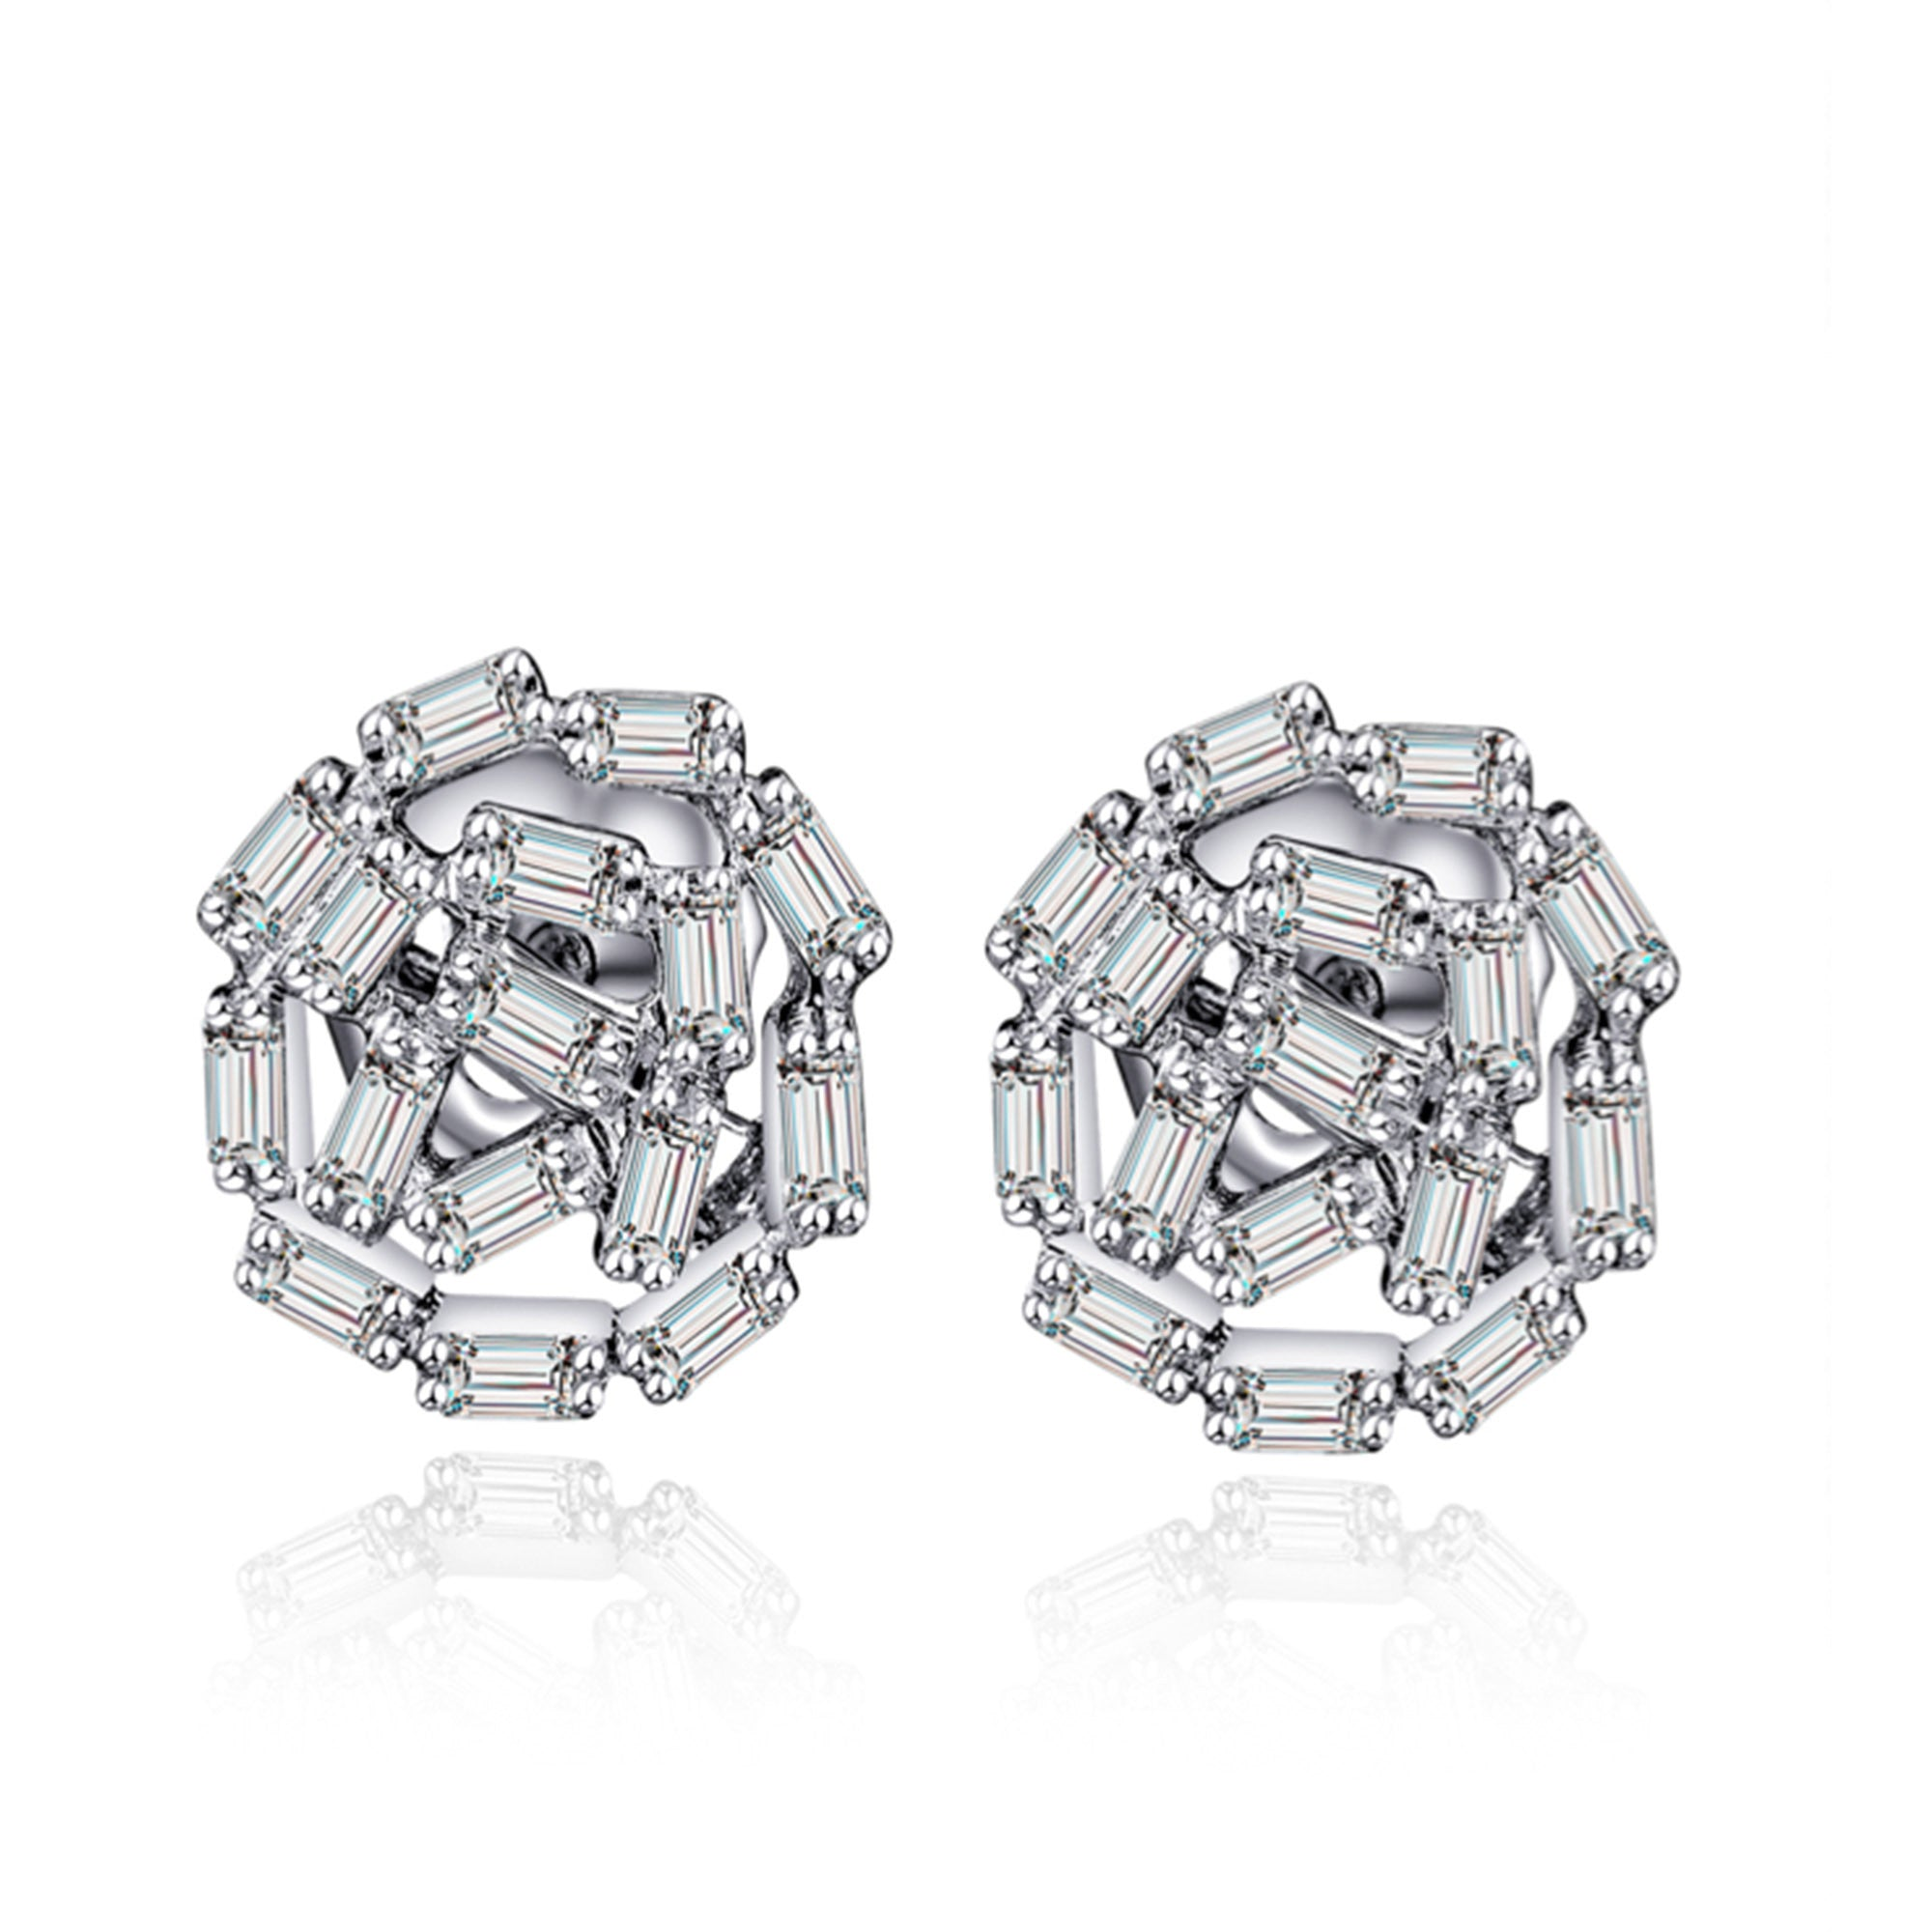 classic earrings square cut diamond jewellery emerald graff stud collections